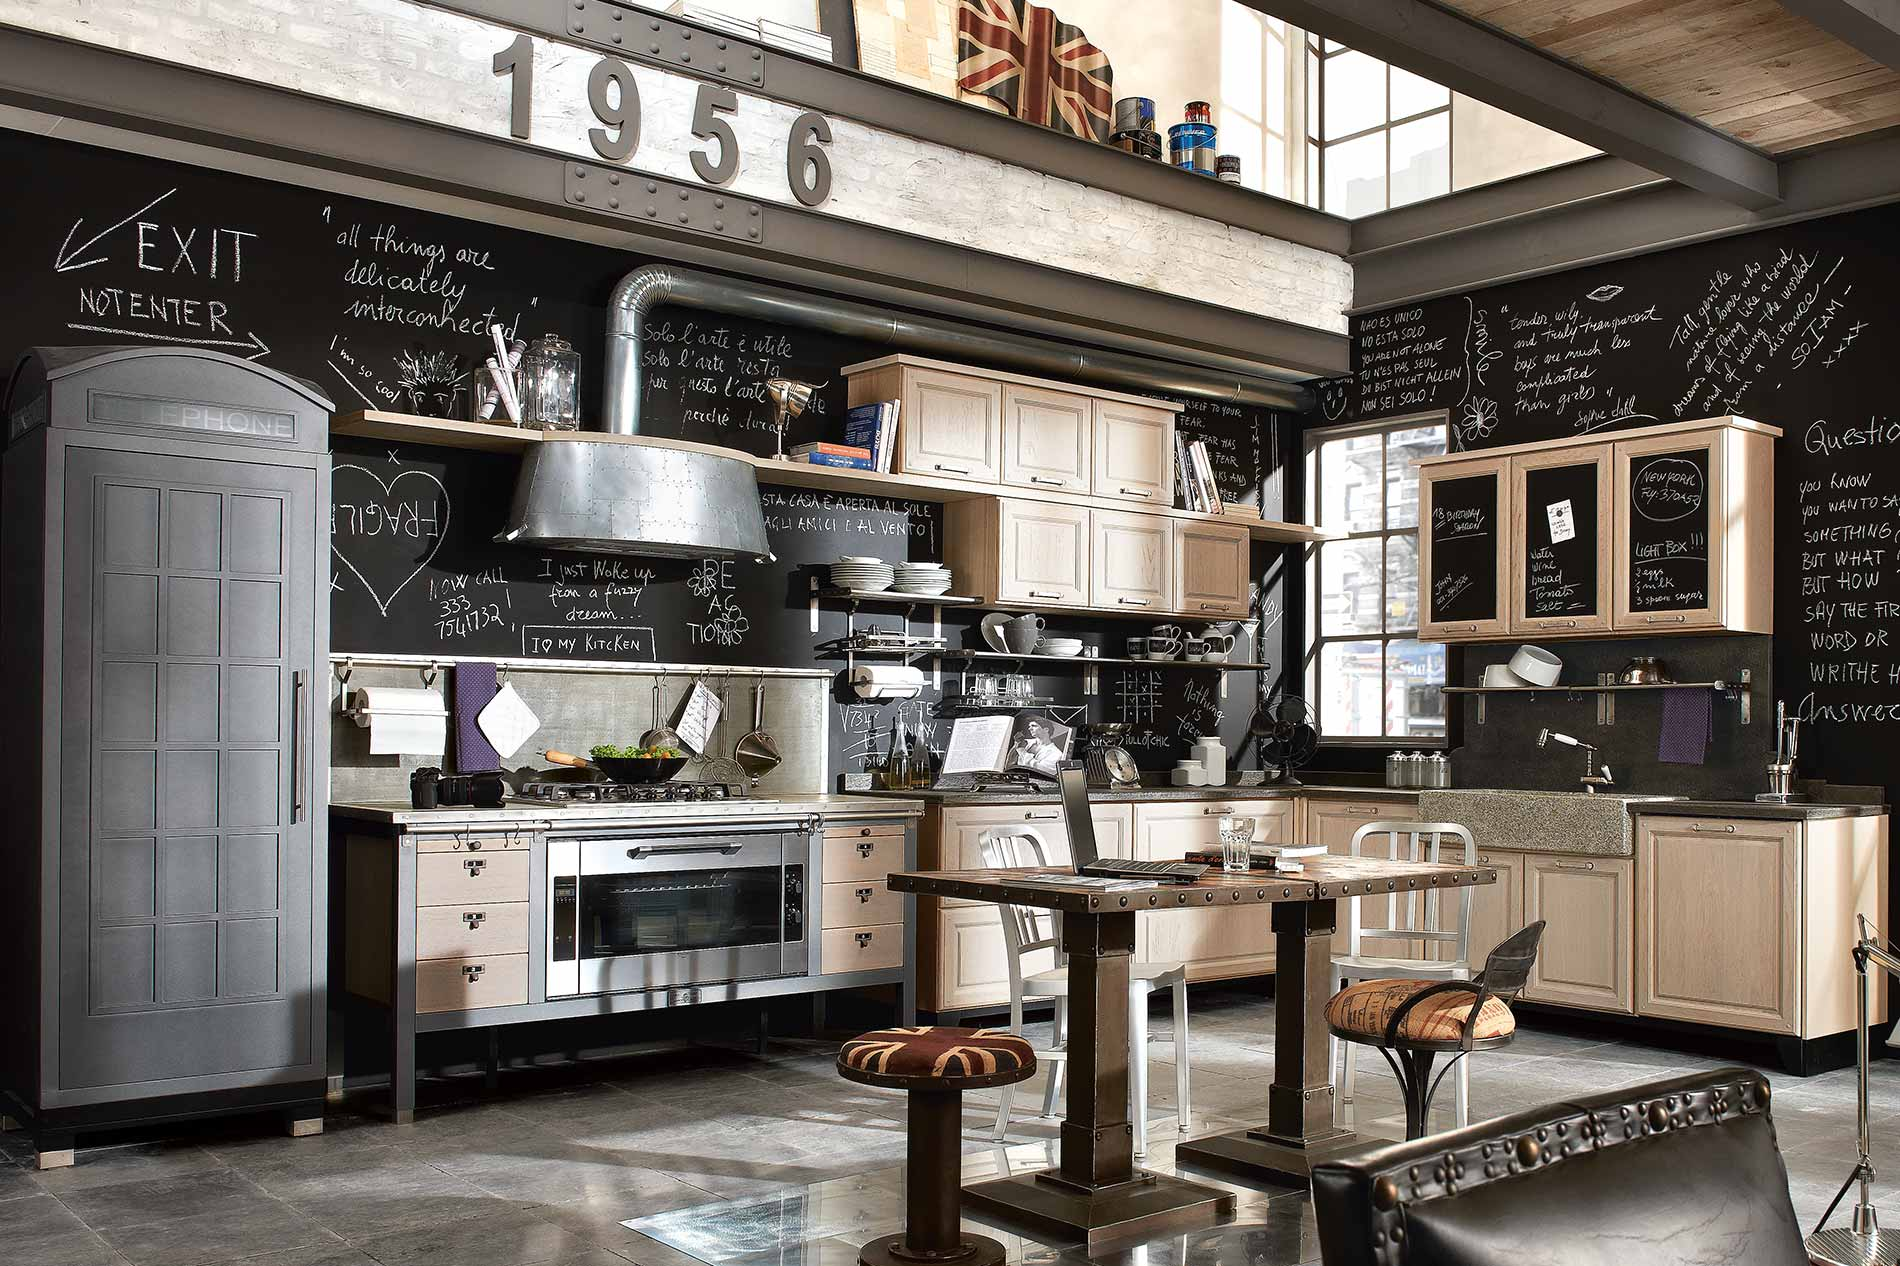 1956 - Marchi Cucine Made in Italy